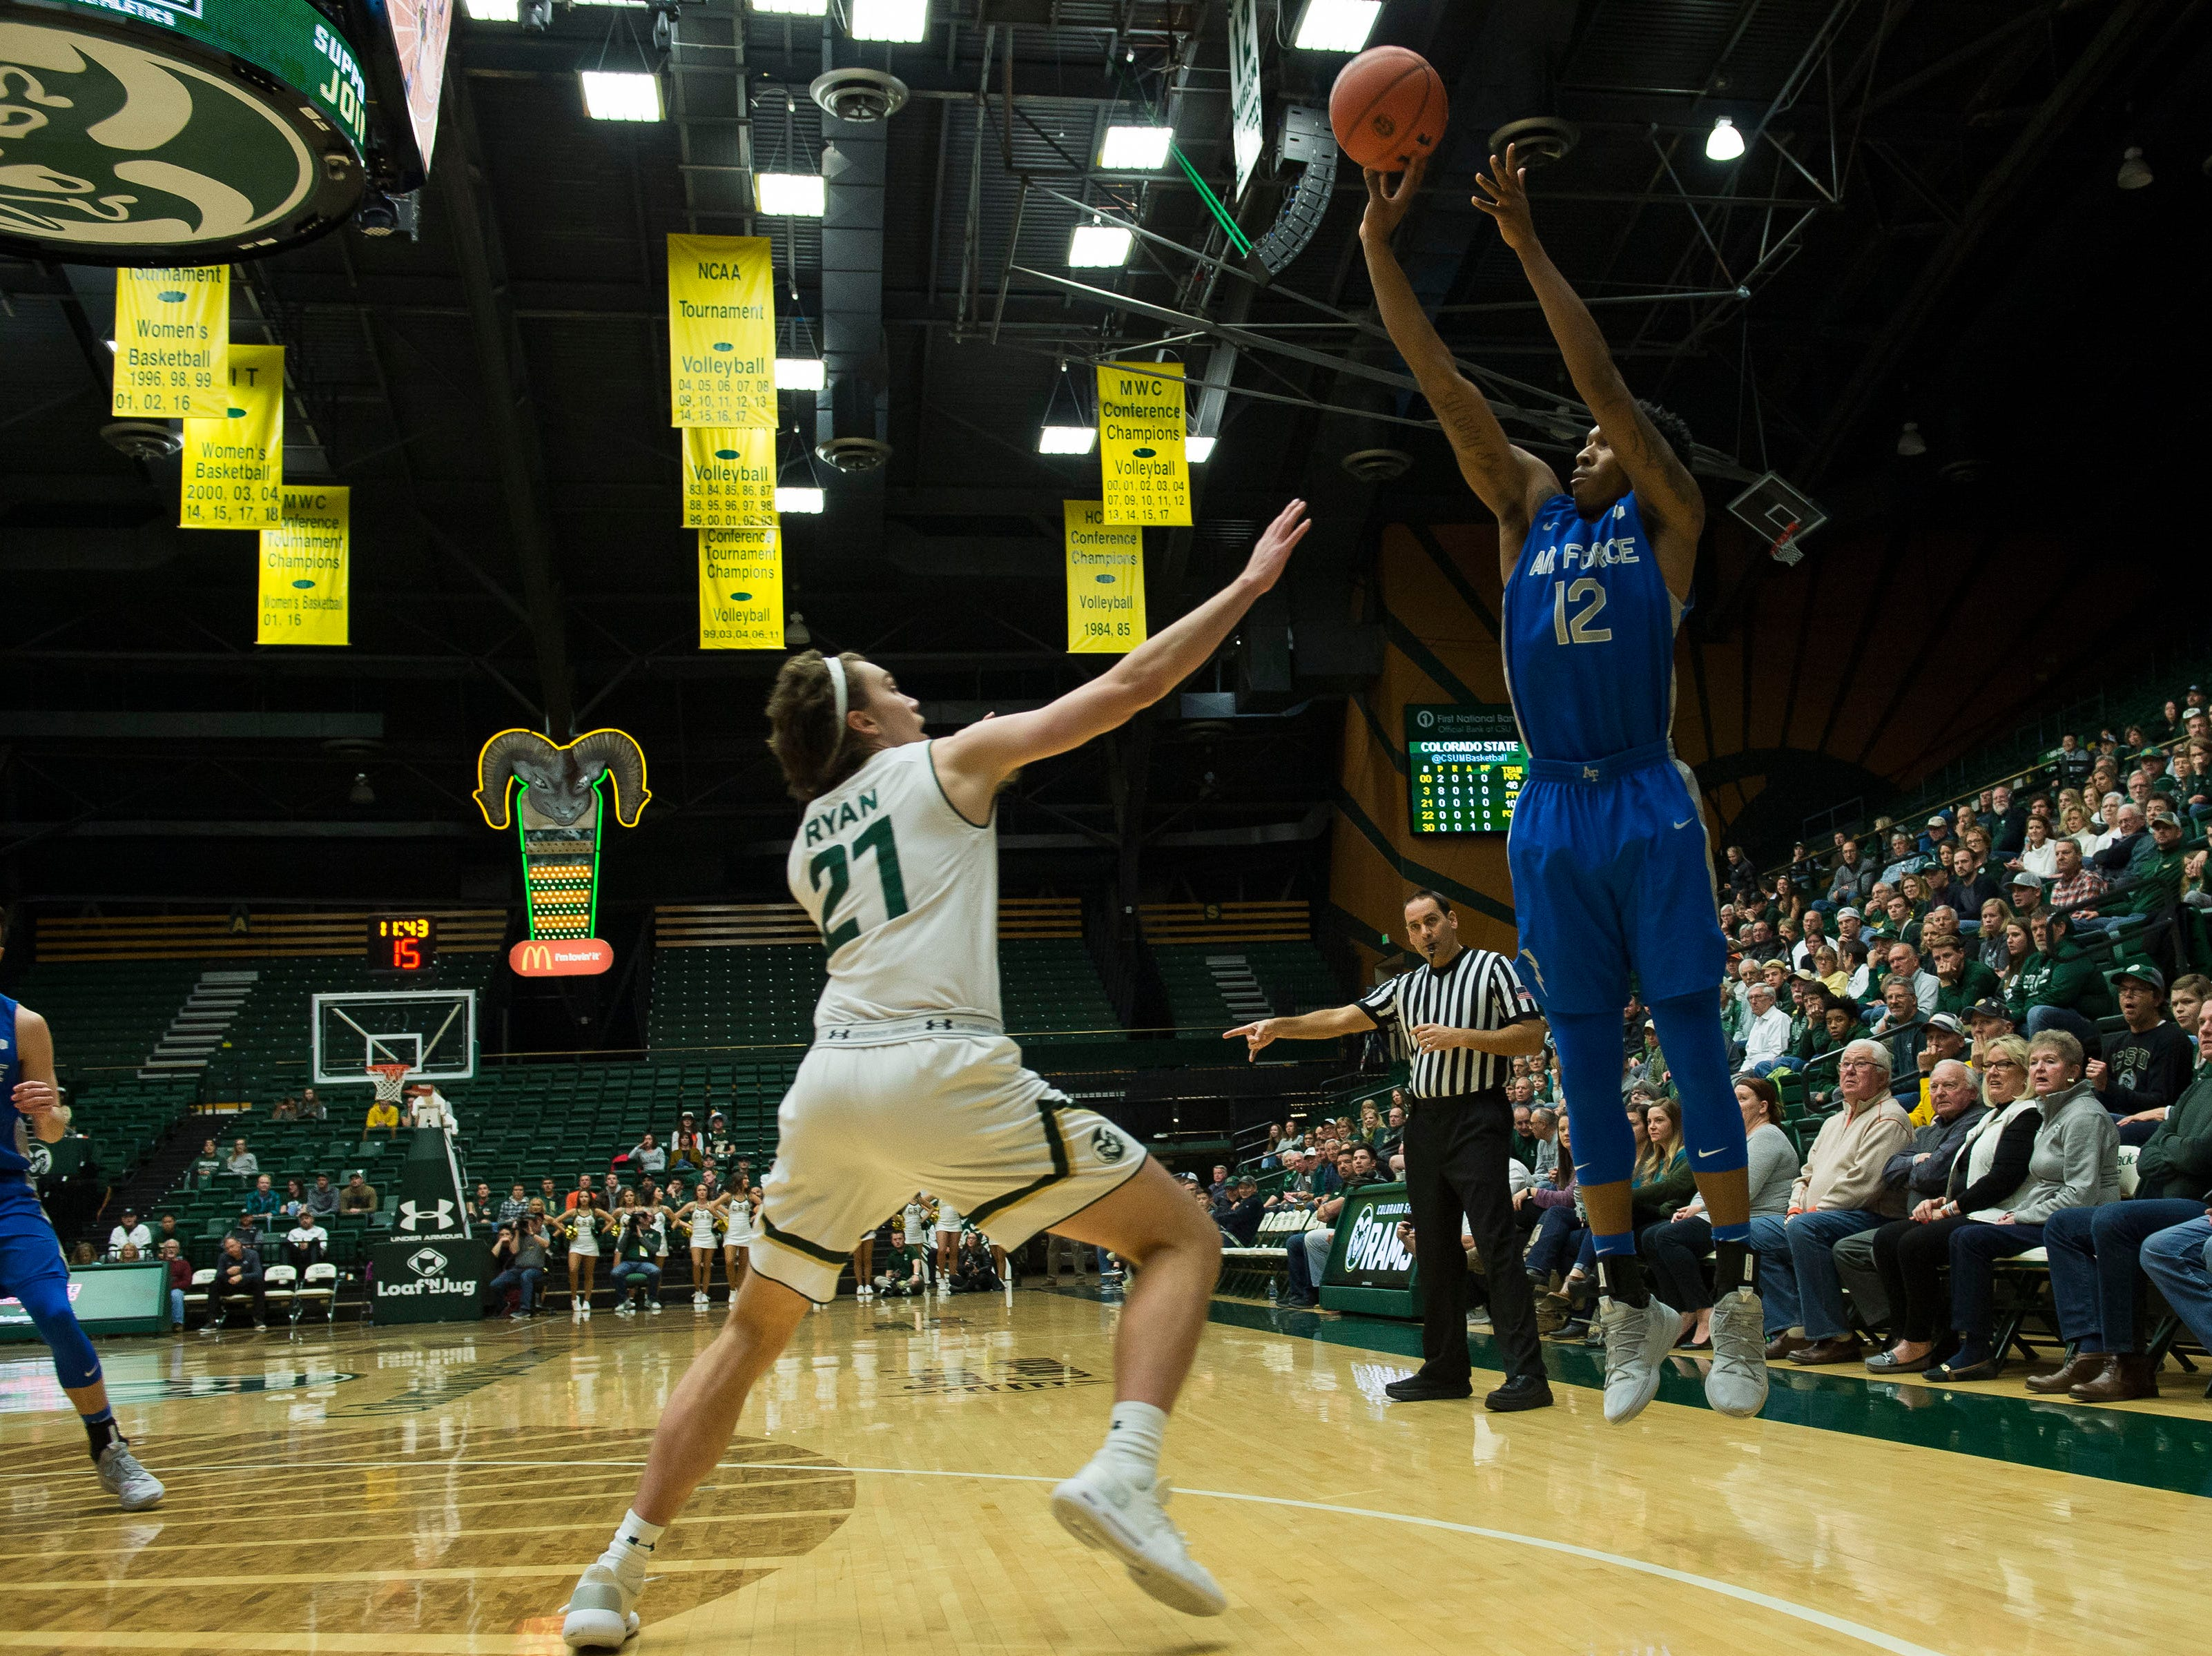 Air Force Academy junior forward Lavelle Scottie (12) takes a long shot against Colorado State University sophomore forward Logan Ryan (21) on Tuesday, Jan. 8, 2019, at Moby Arena in Fort Collins, Colo.